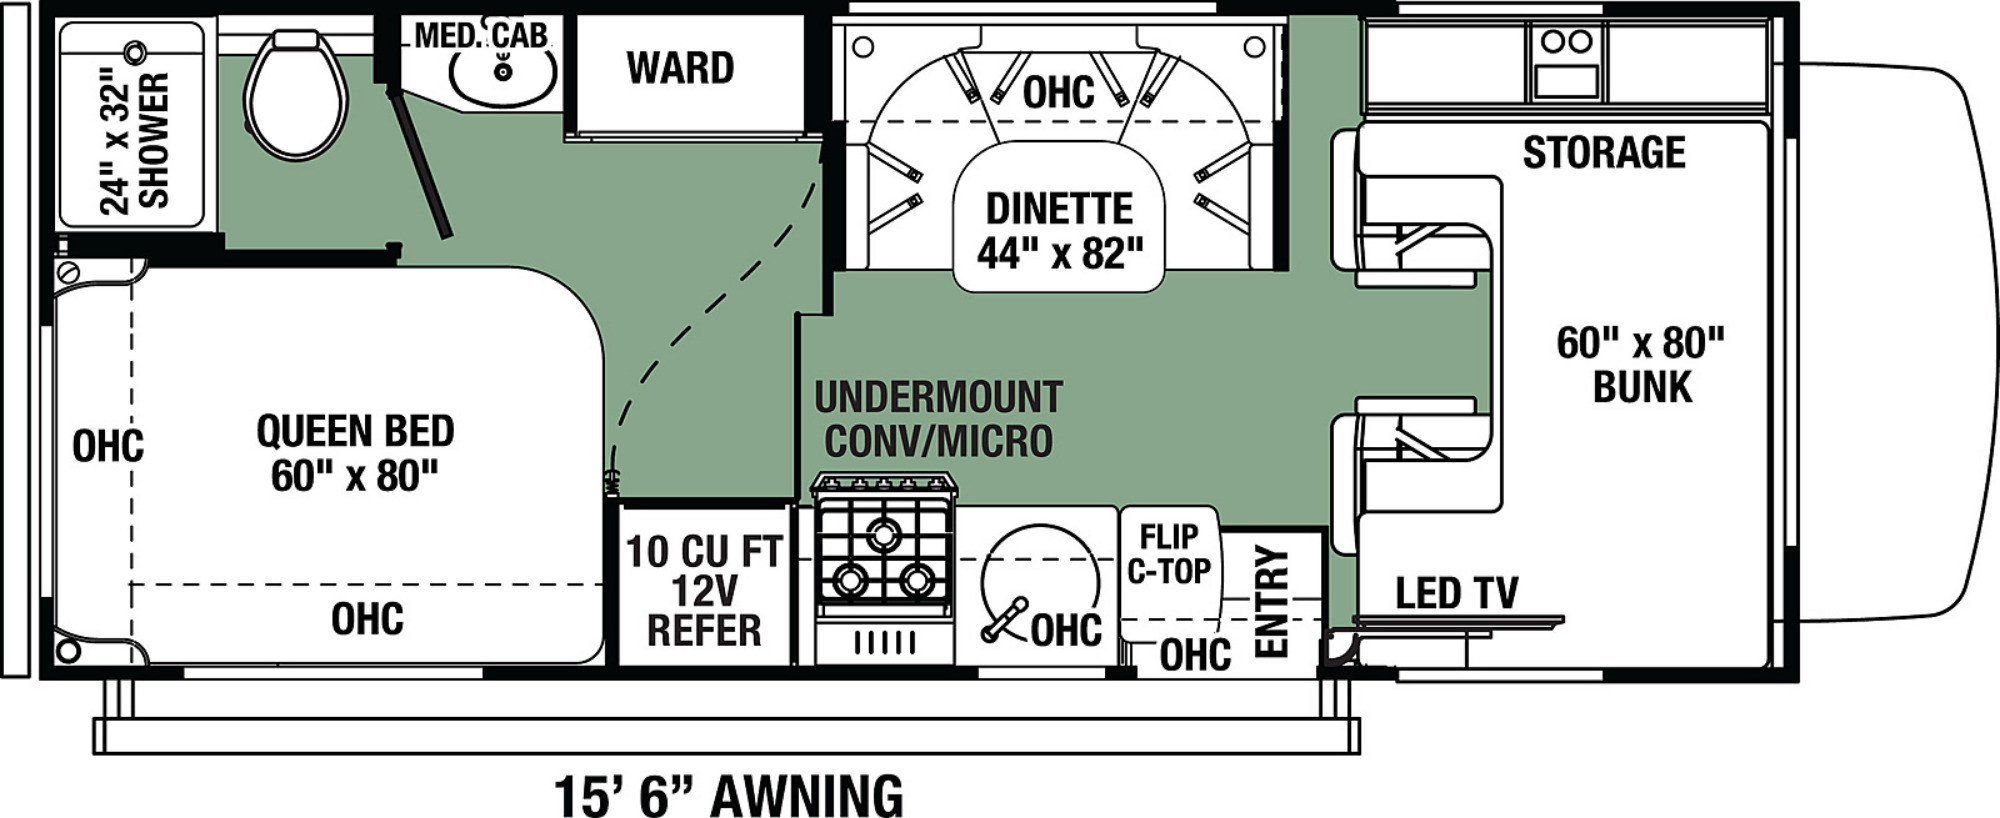 View Floor Plan for 2021 FOREST RIVER FORESTER LE 2351F